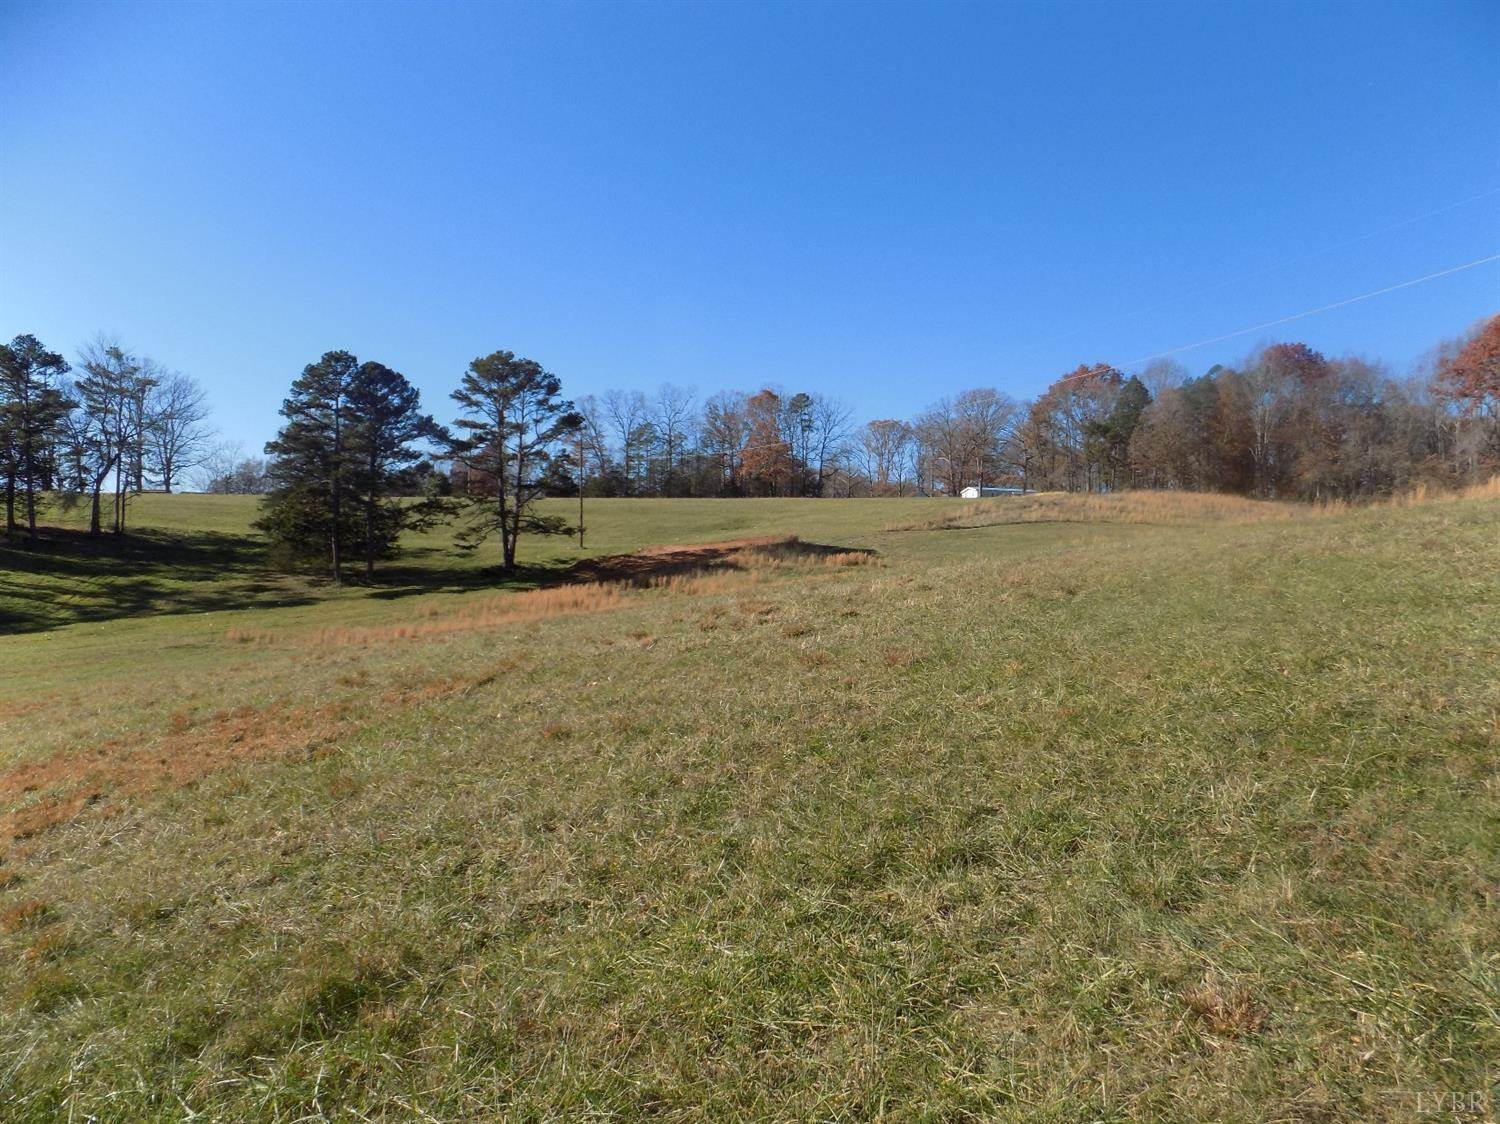 0 Lot 4 Goode -Bells Mlll Road, #4, Goode, VA 24556